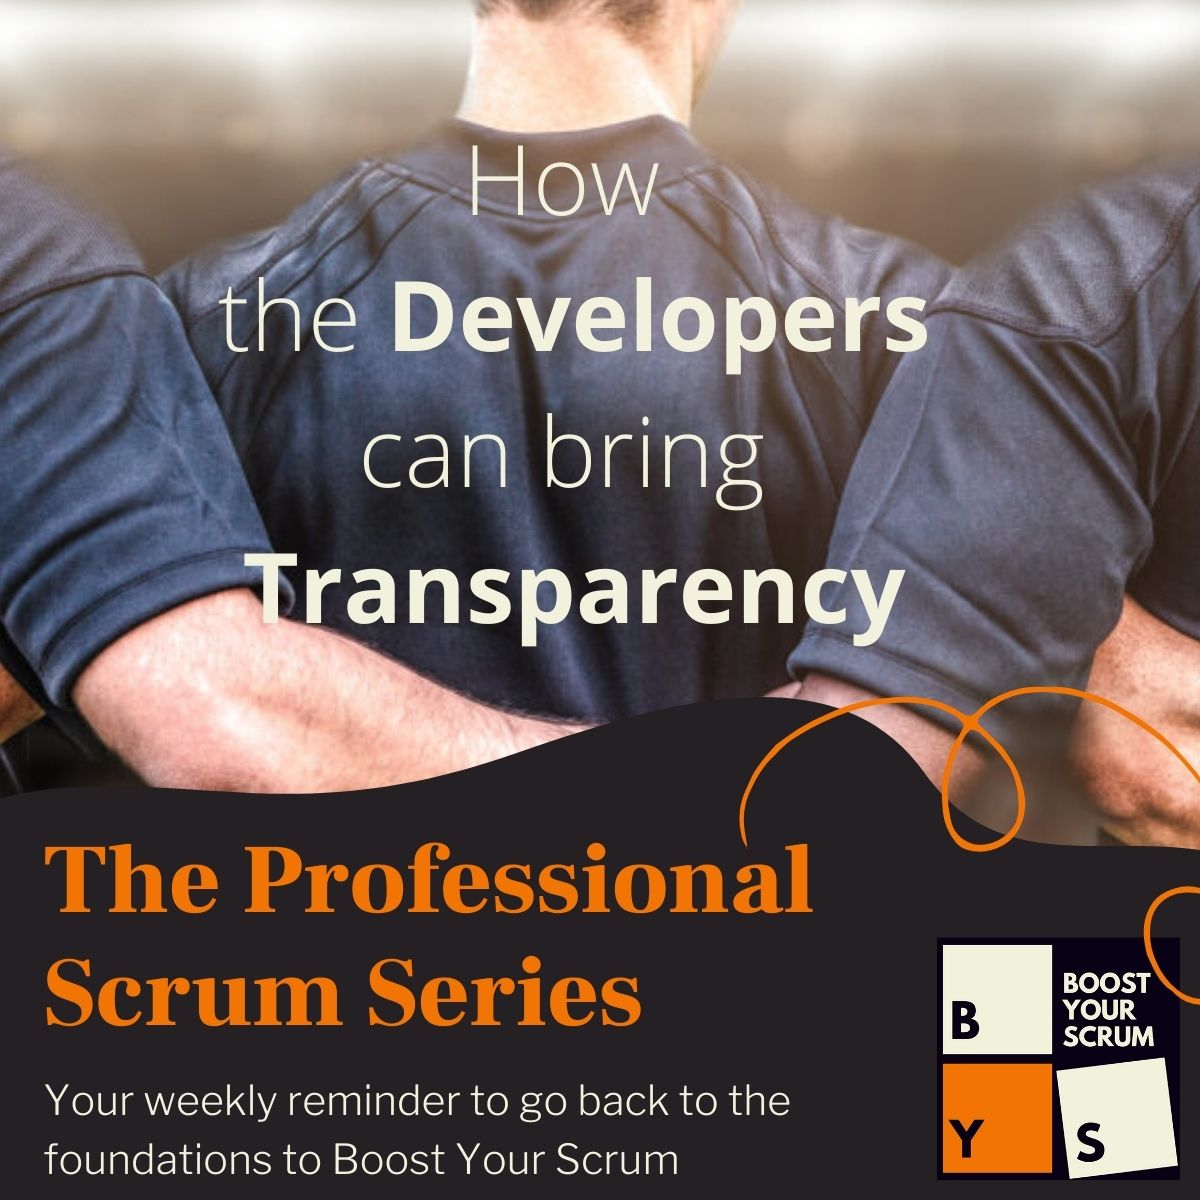 How the Product Owner raises Transparency